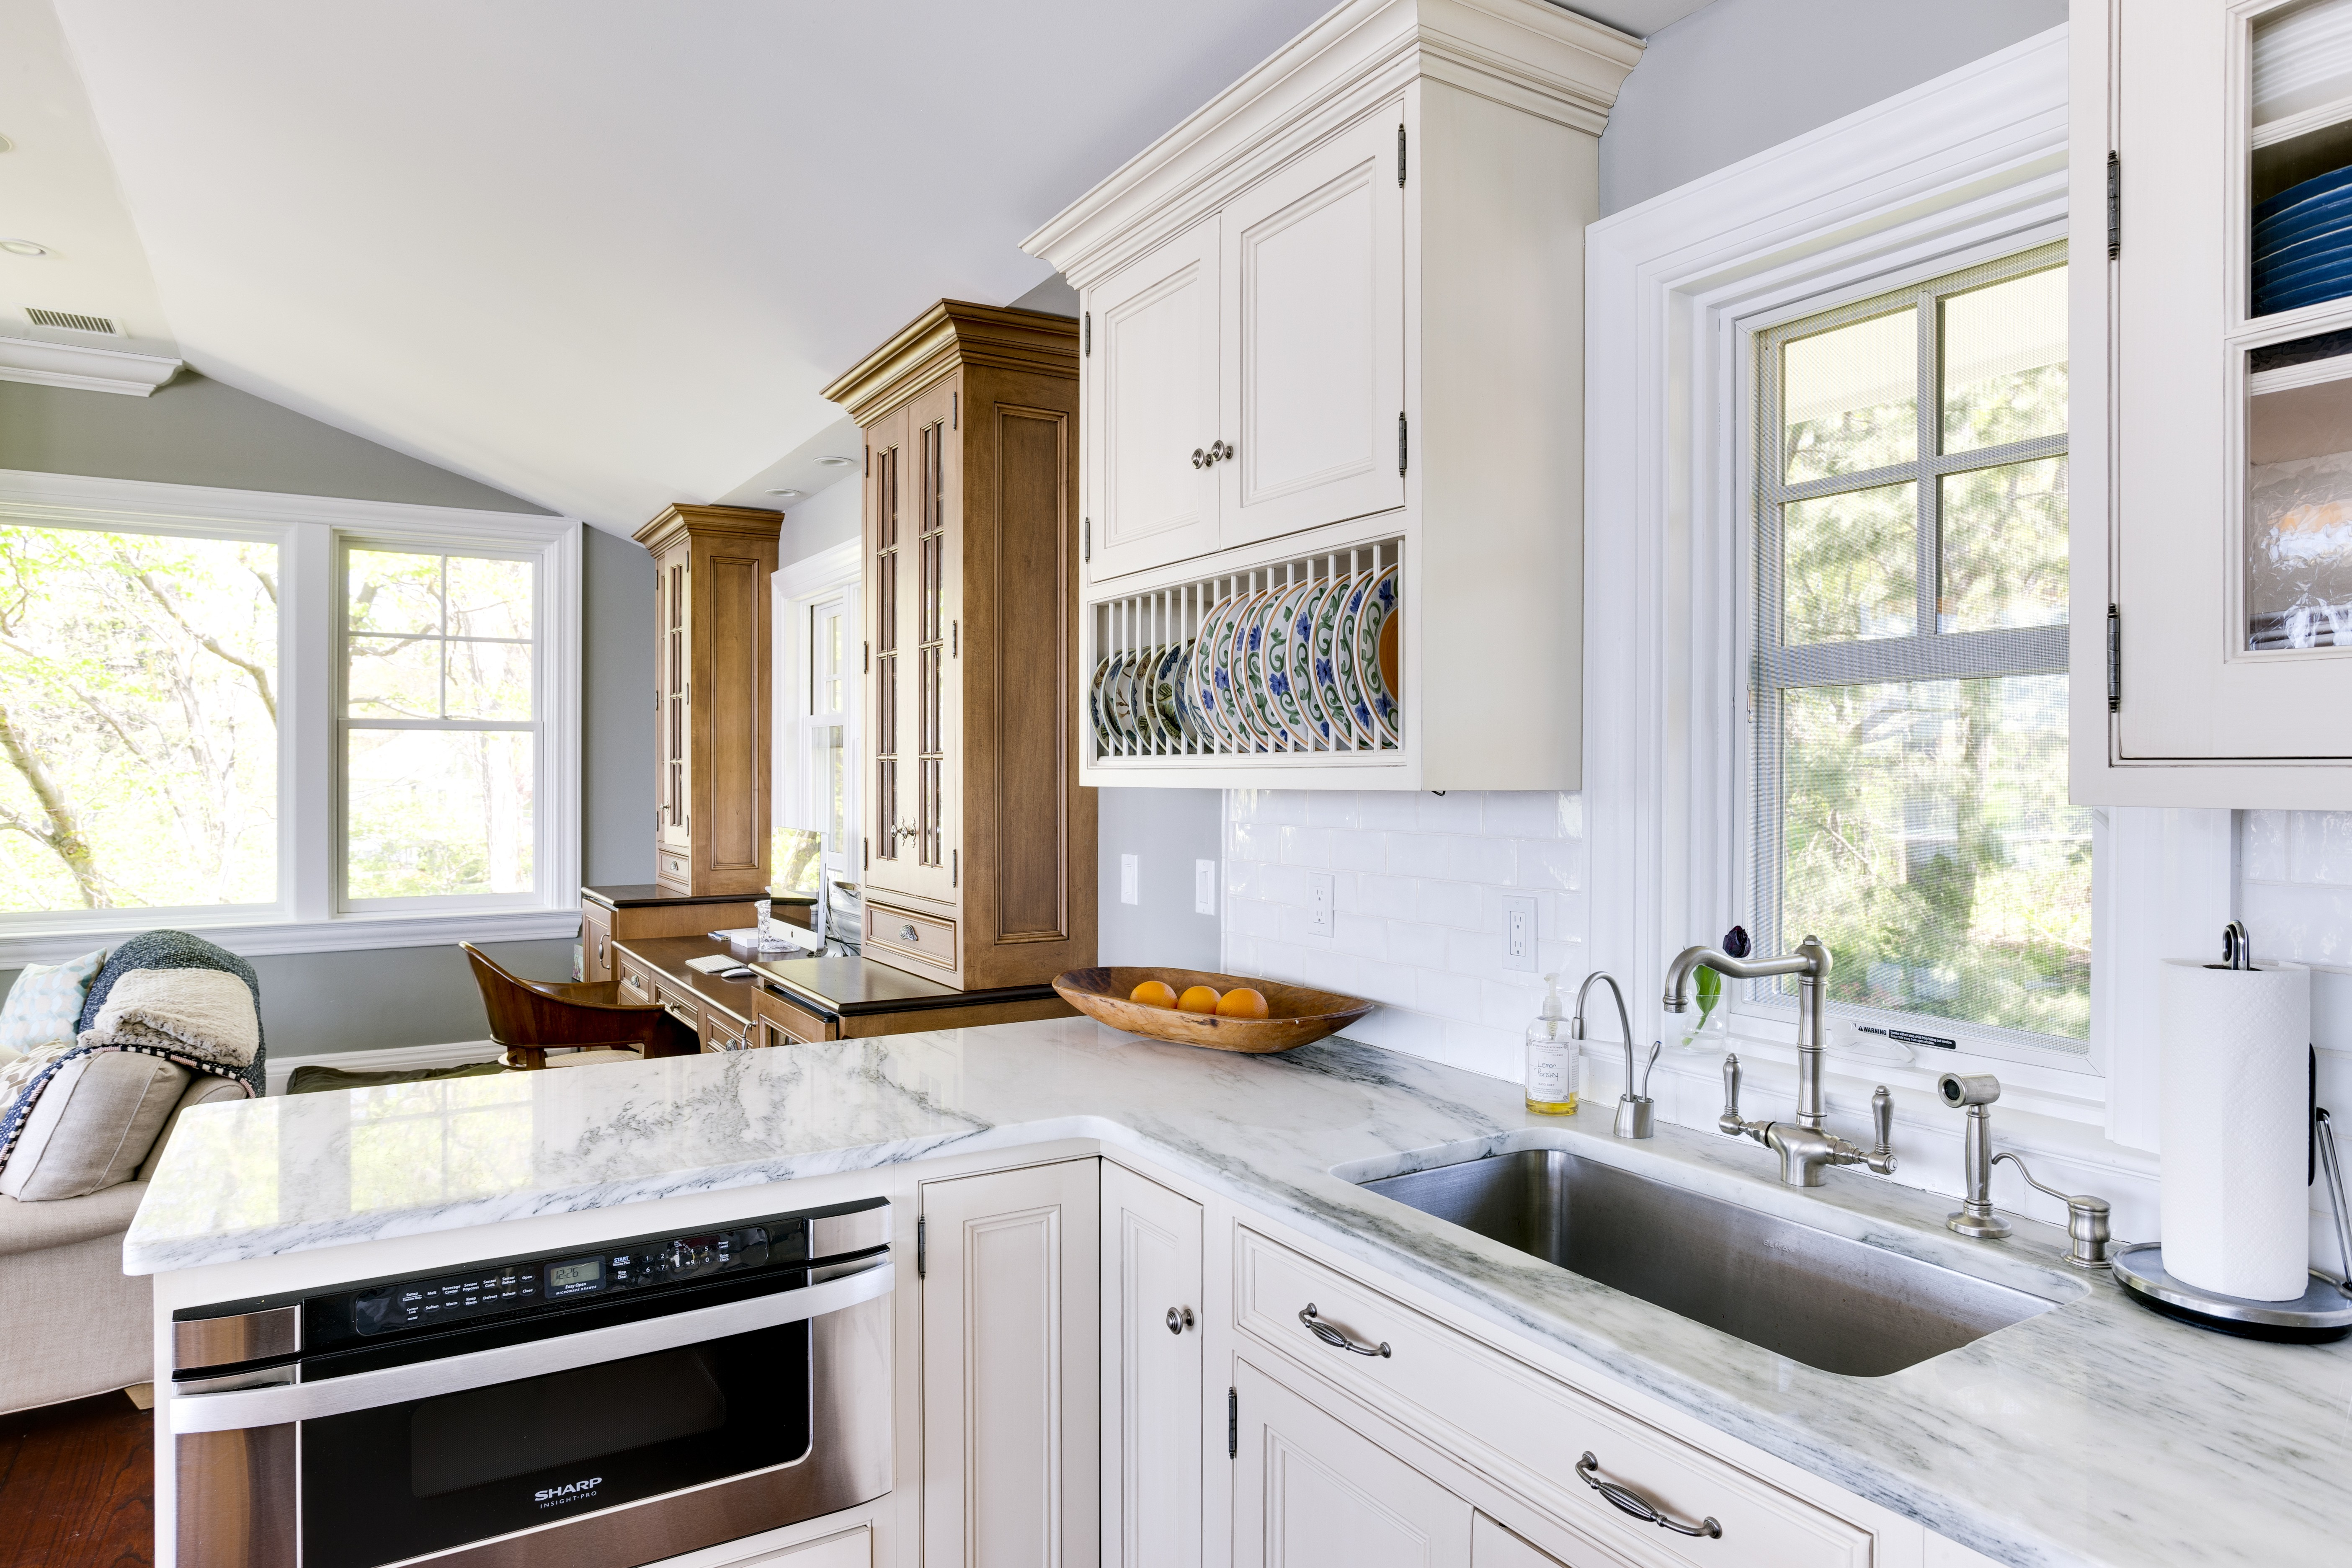 ... Catch And Reflect Sunlight To Make Your Kitchen Look Larger And More  Pristine Than It Really Is. If Your Kitchen Is On The Smaller Side, White  Cabinets ...